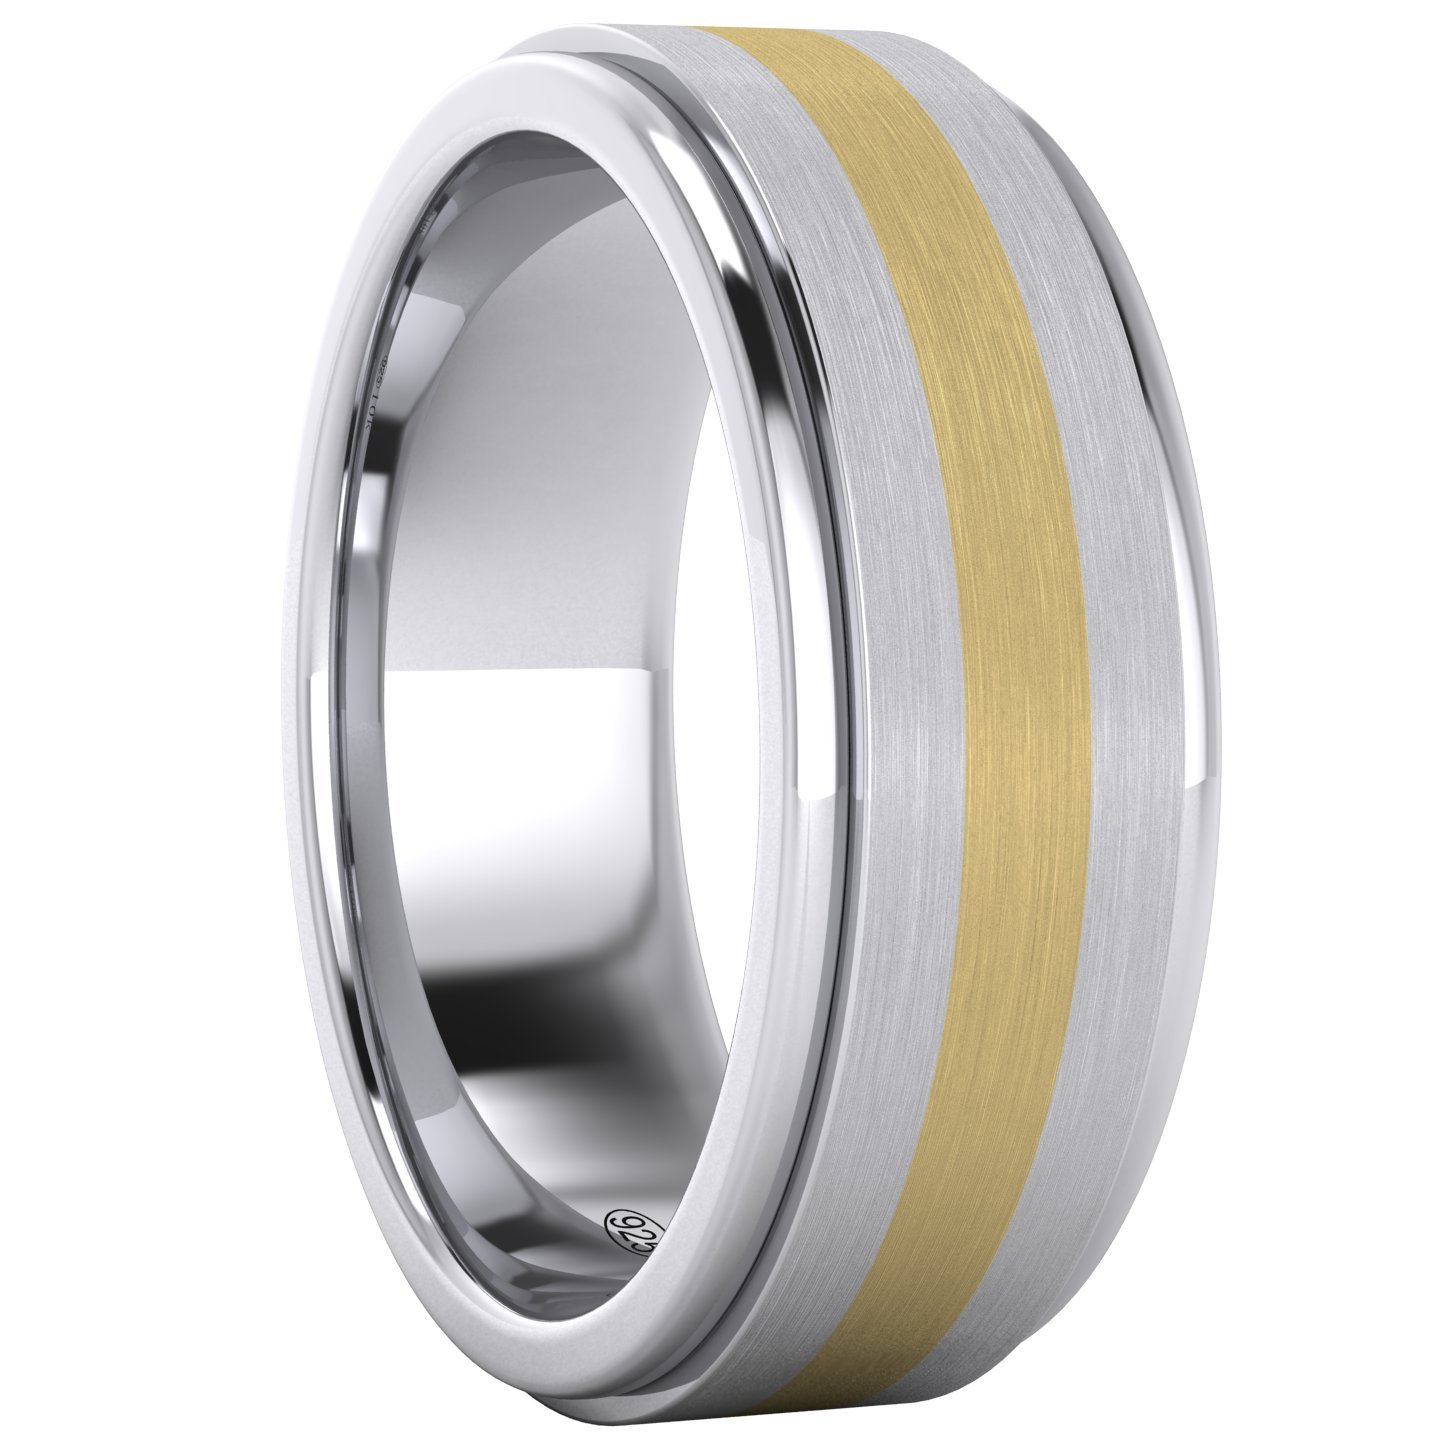 LANDA JEWEL Solid 10K Yellow Gold Inlaid Heavy 8mm Sterling Silver Mens Wedding Band Comfort Fit Two Tone (11) by LANDA JEWEL (Image #3)